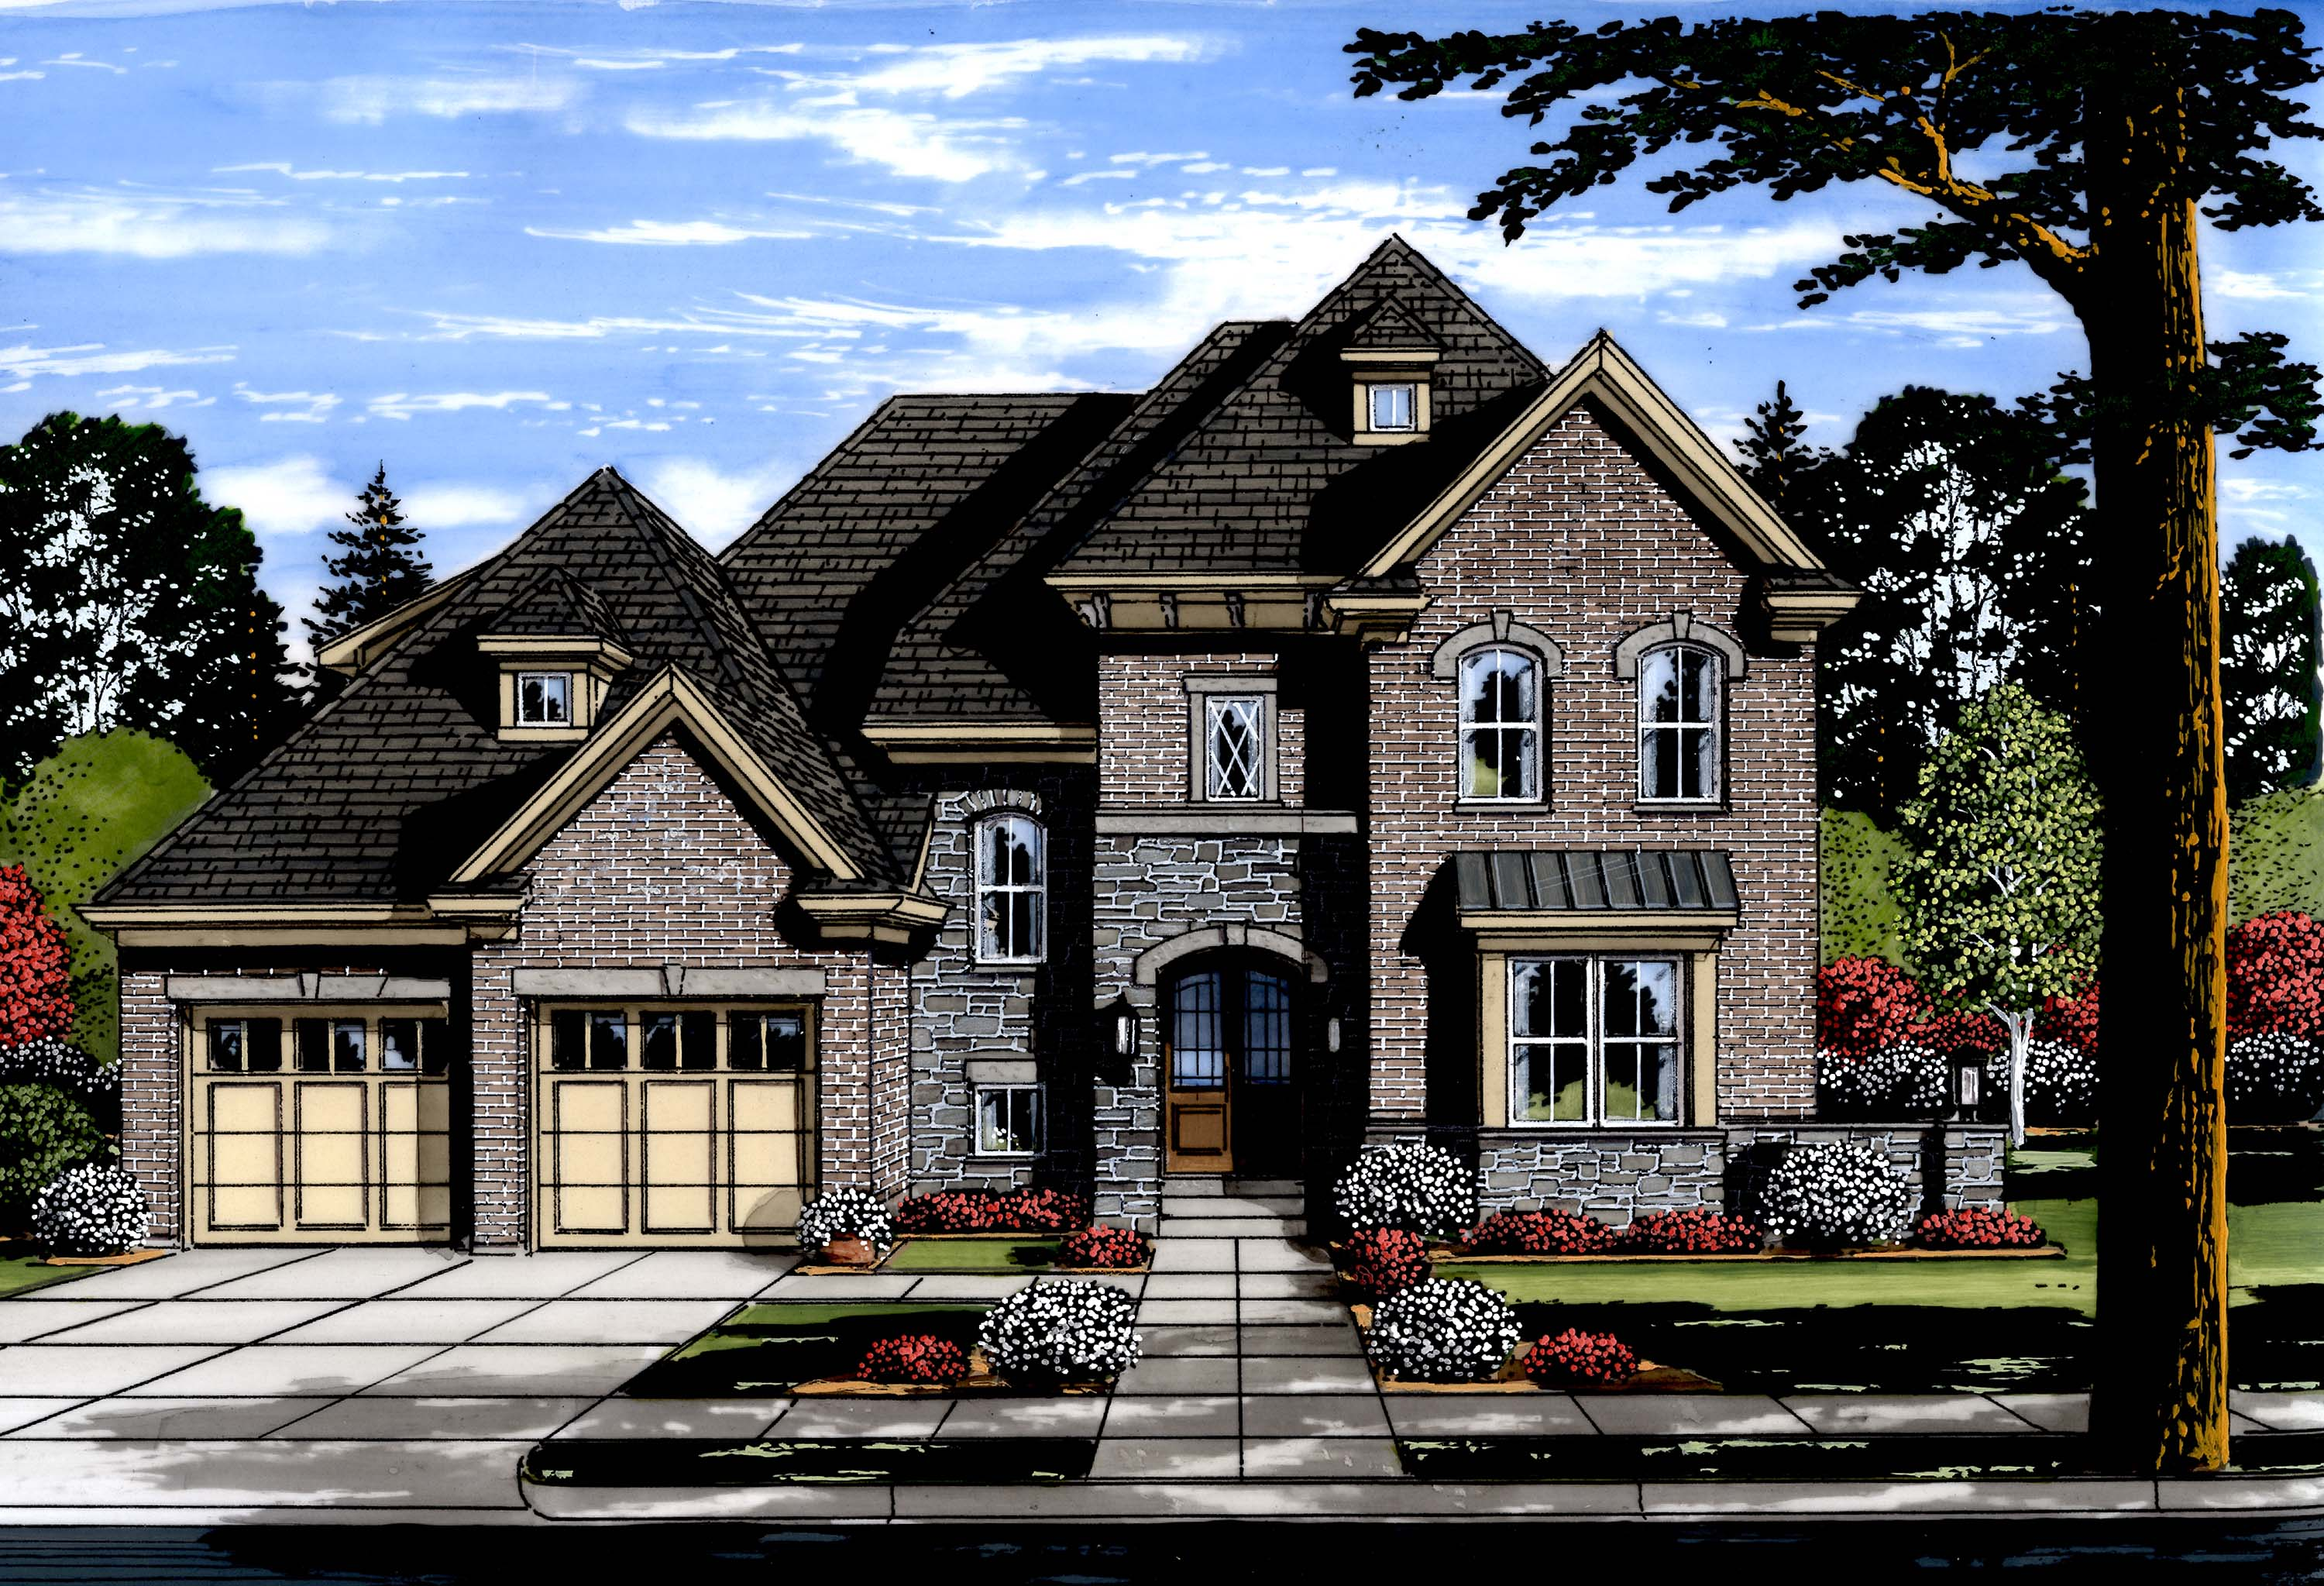 Luxury House Plan #169-1120: 4 Bedrm, 3287 Sq Ft Home